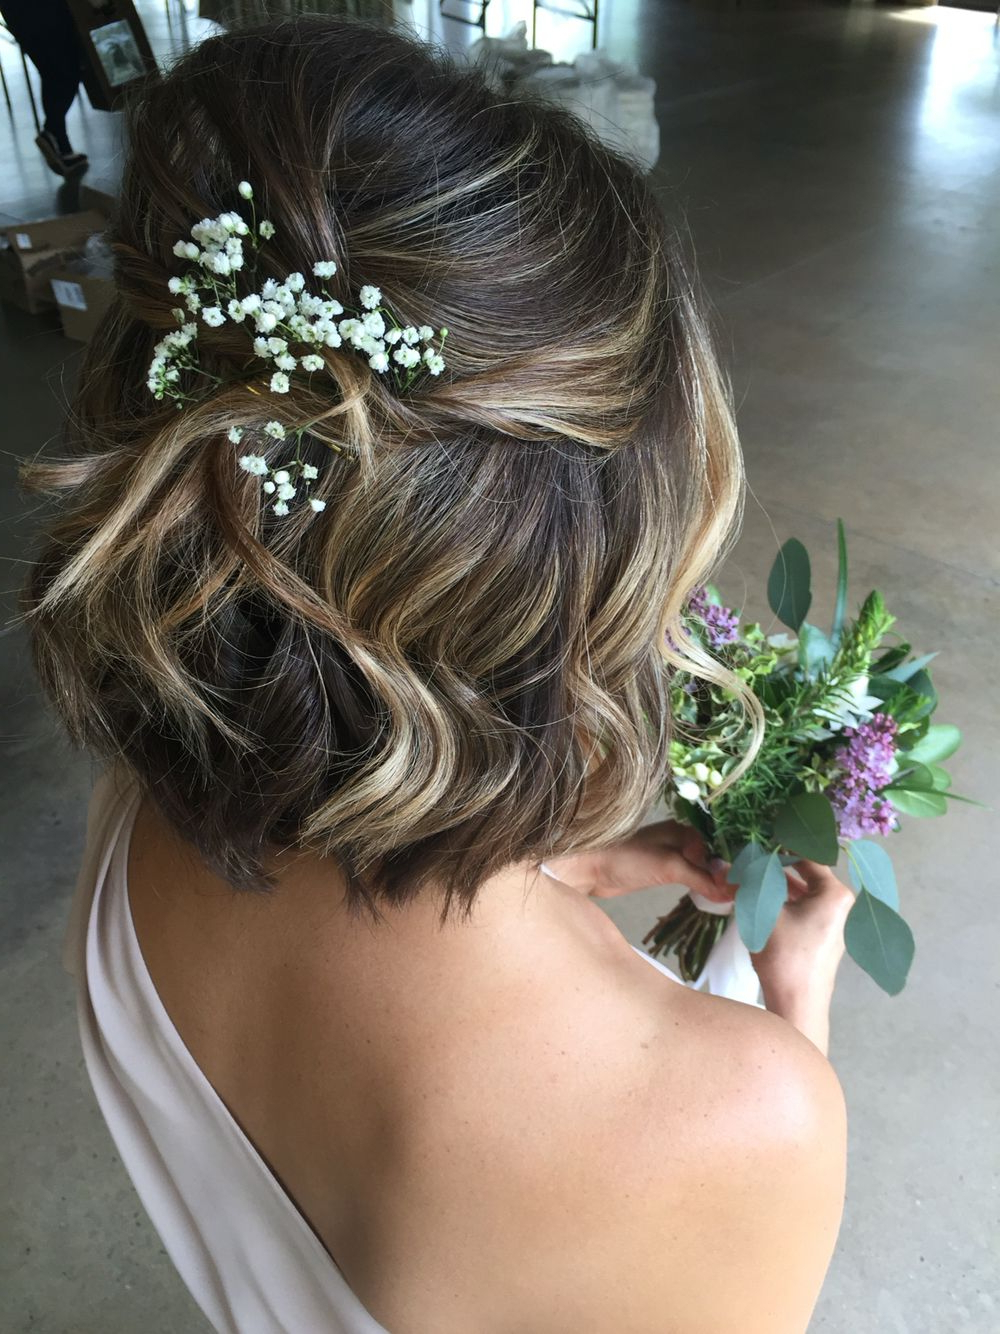 Pinlyss Laurens On Short Hairstyles | Pinterest | Wedding Pertaining To Hairstyles For Short Hair Wedding (View 2 of 25)